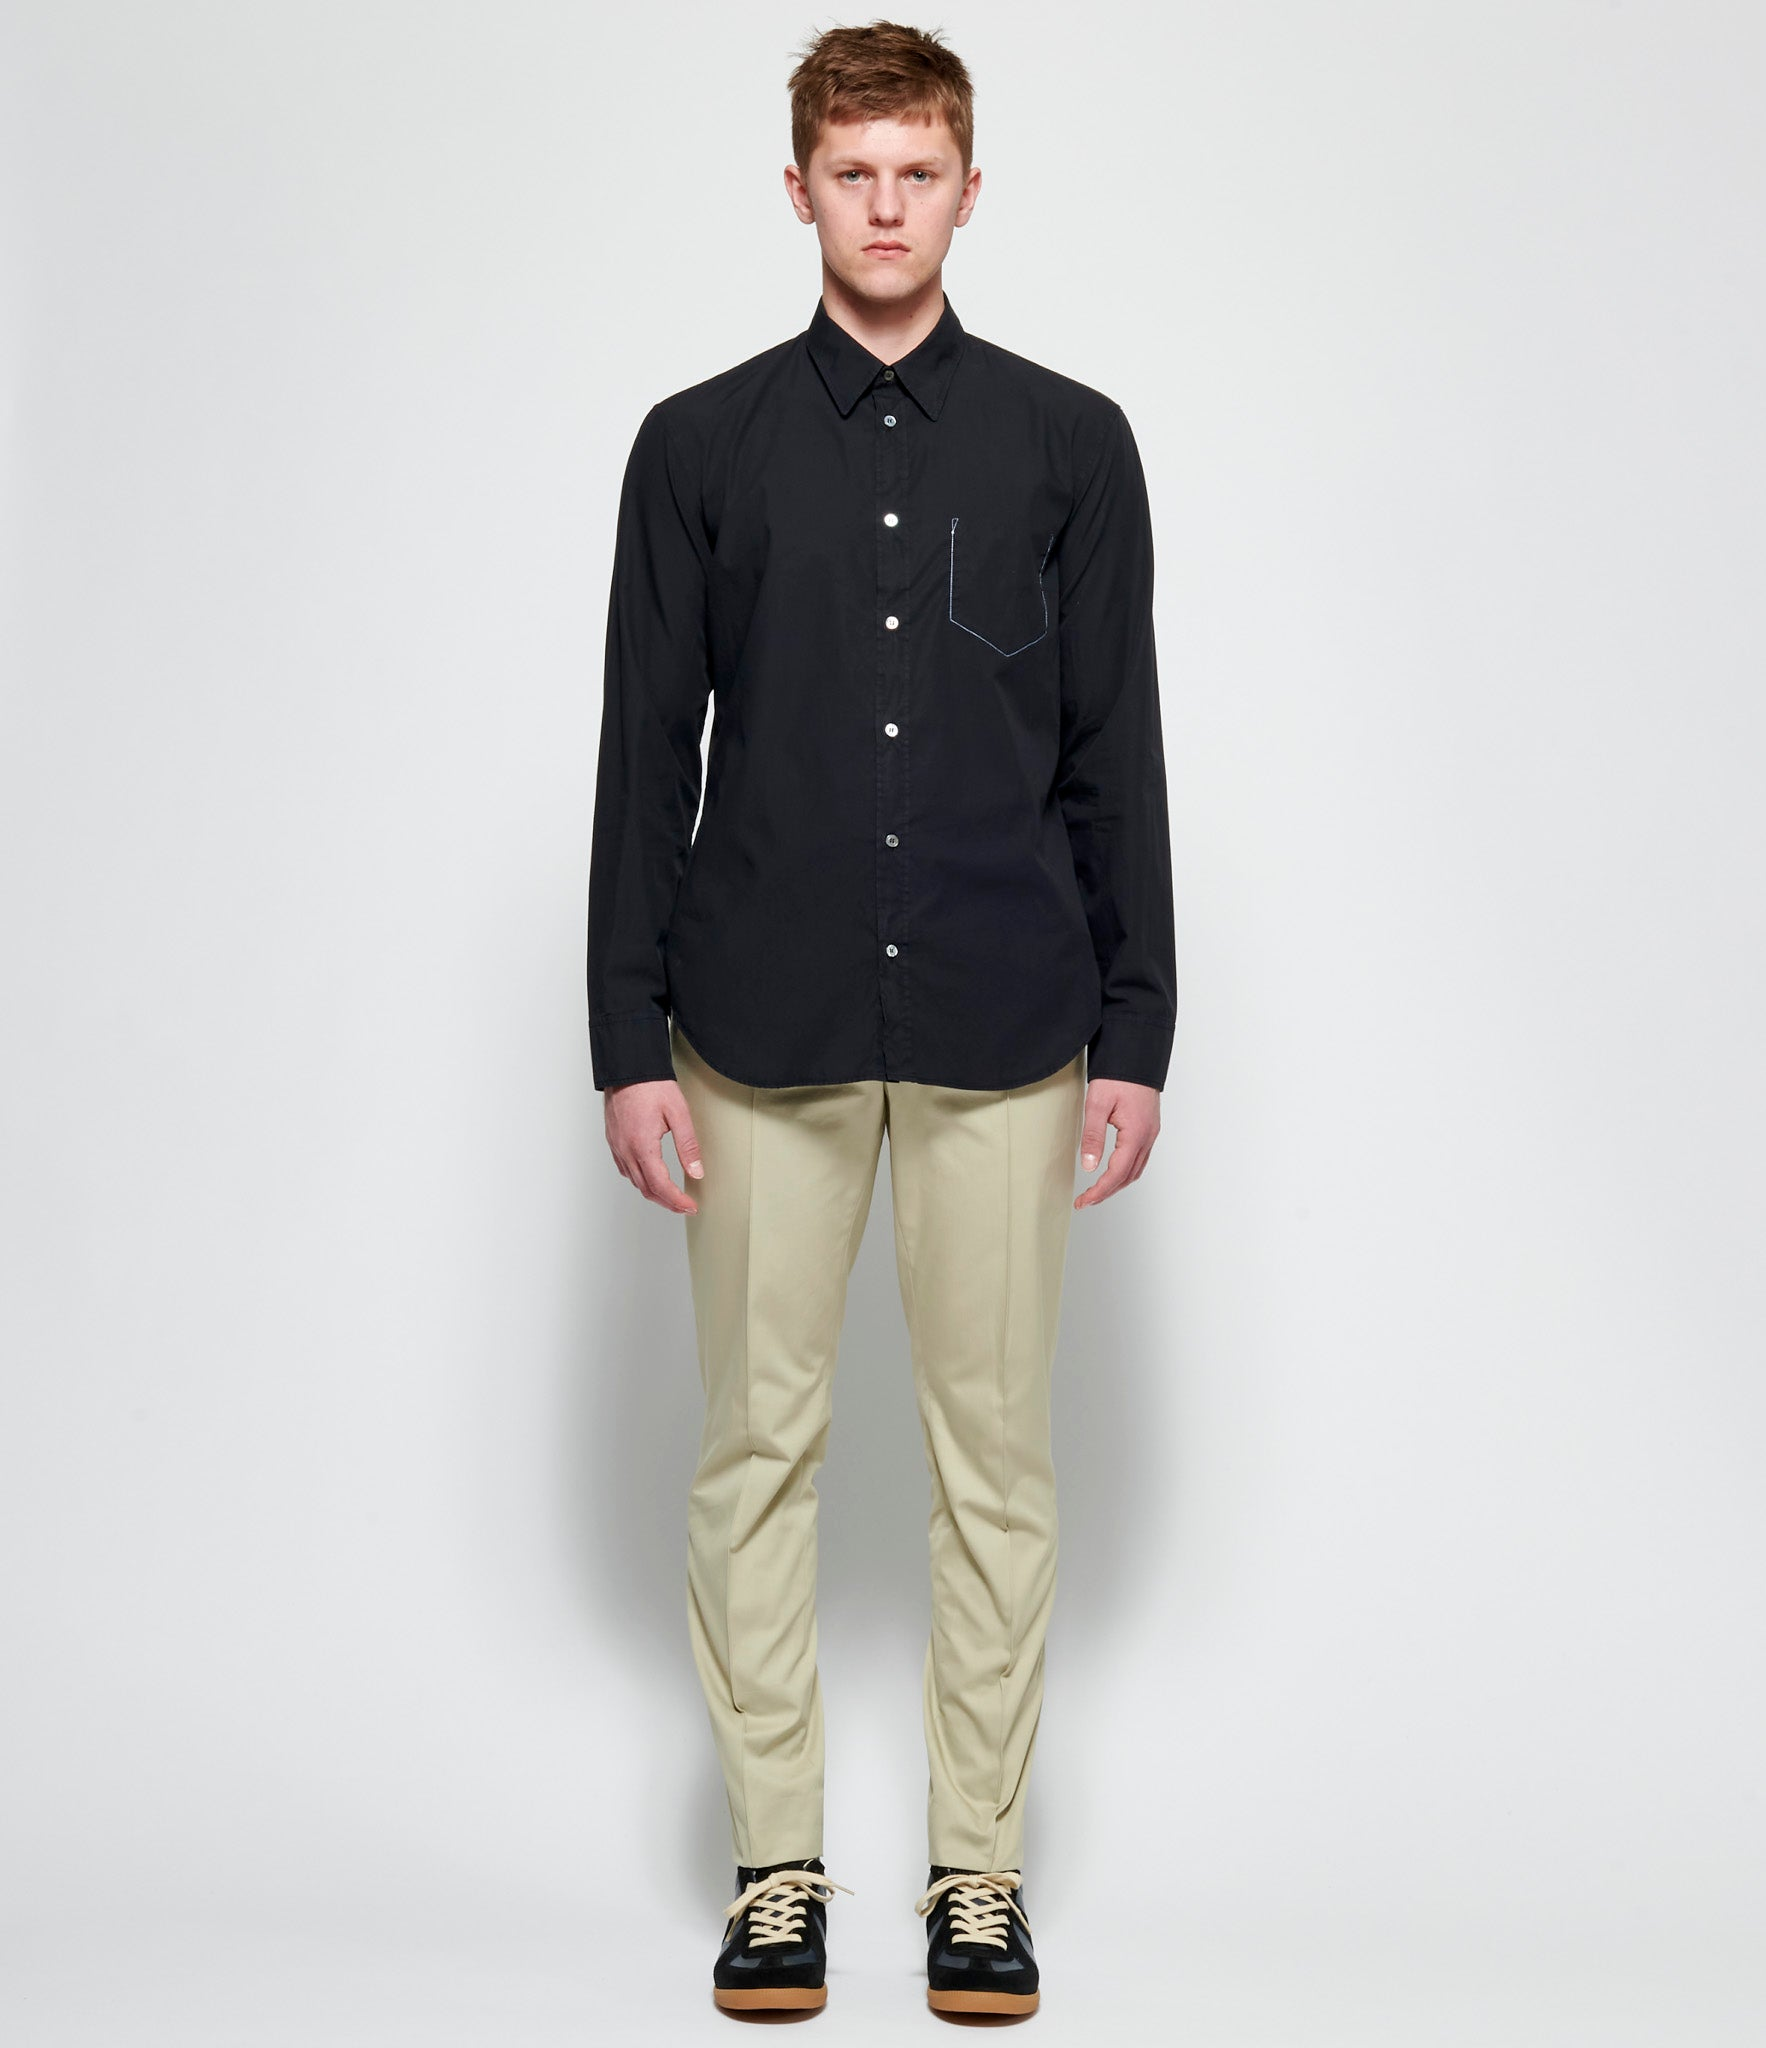 Maison Margiela Black Garment Dyed Slim Fit Shirt